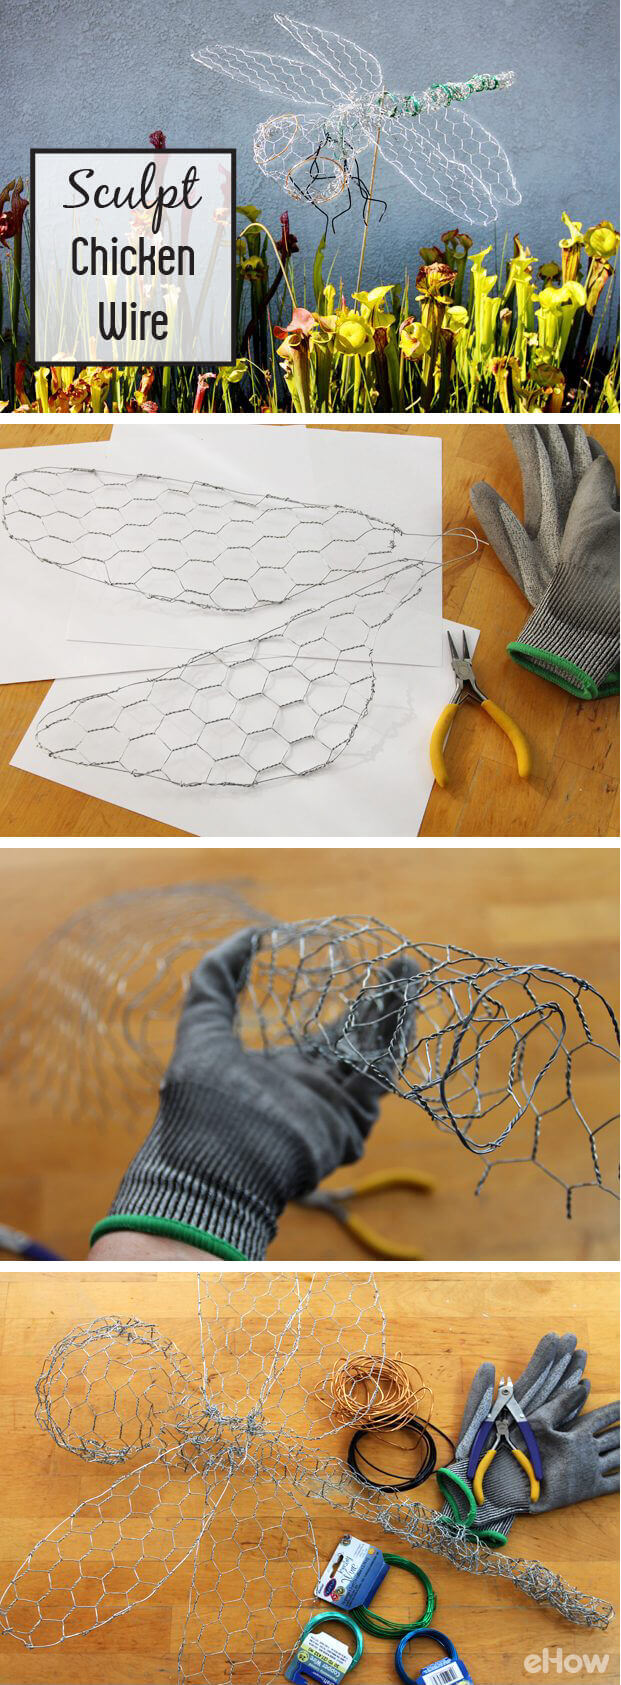 Make a Dragonfly from Chicken Wire